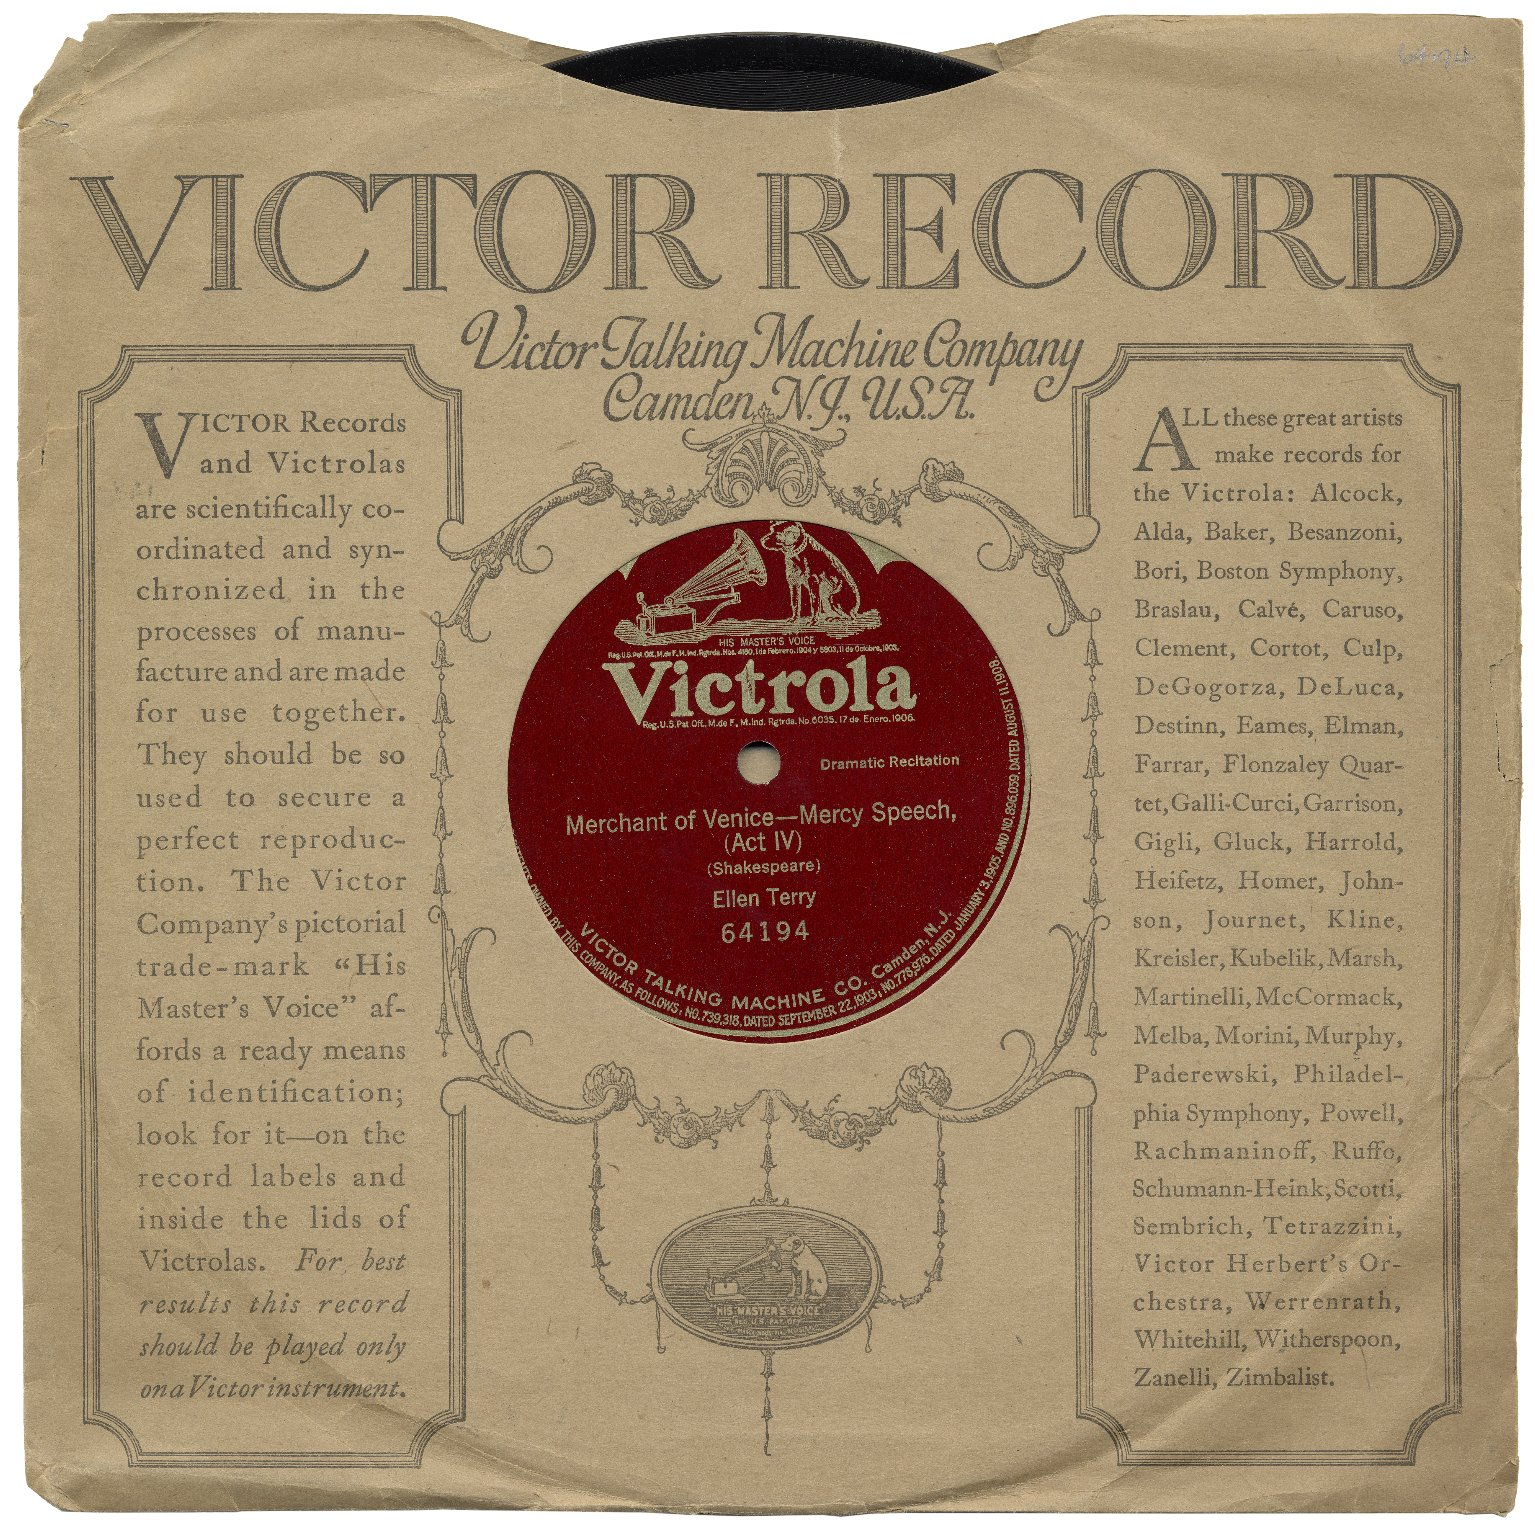 Victrola Record of Merchant of Venice